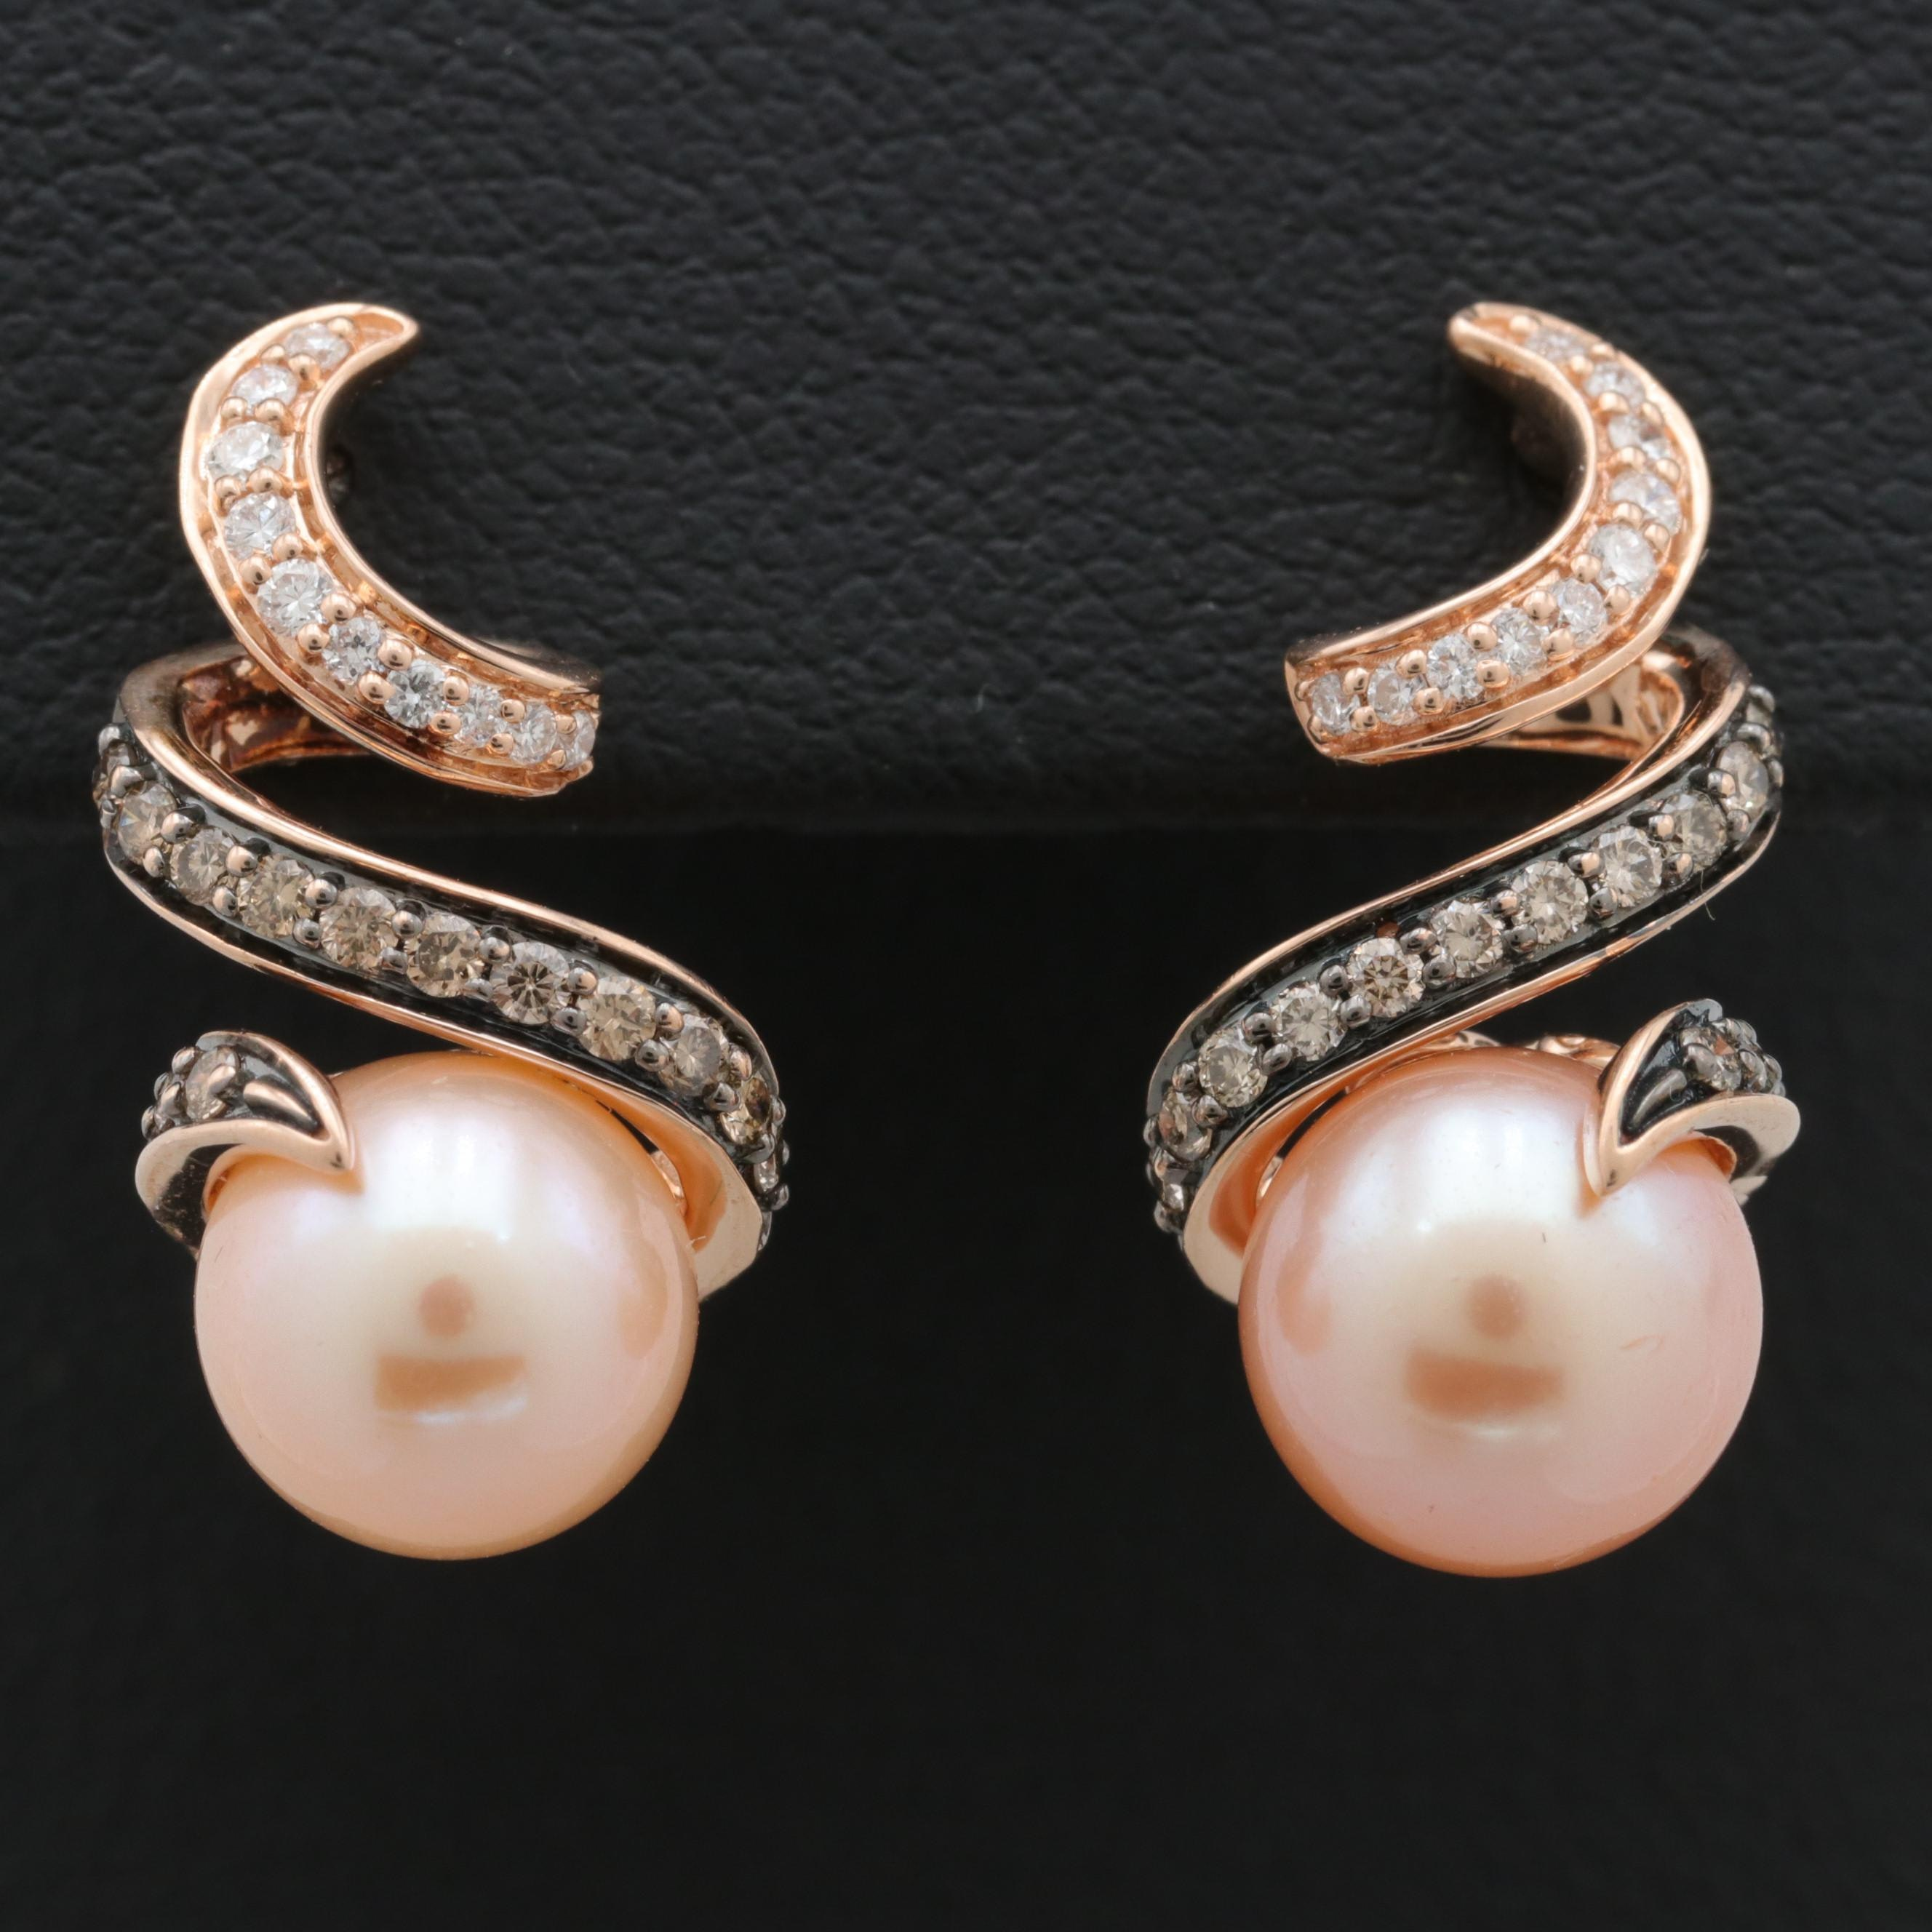 Le Vian 14KT Rose Gold Cultured Pearl and Diamond Drop Earrings